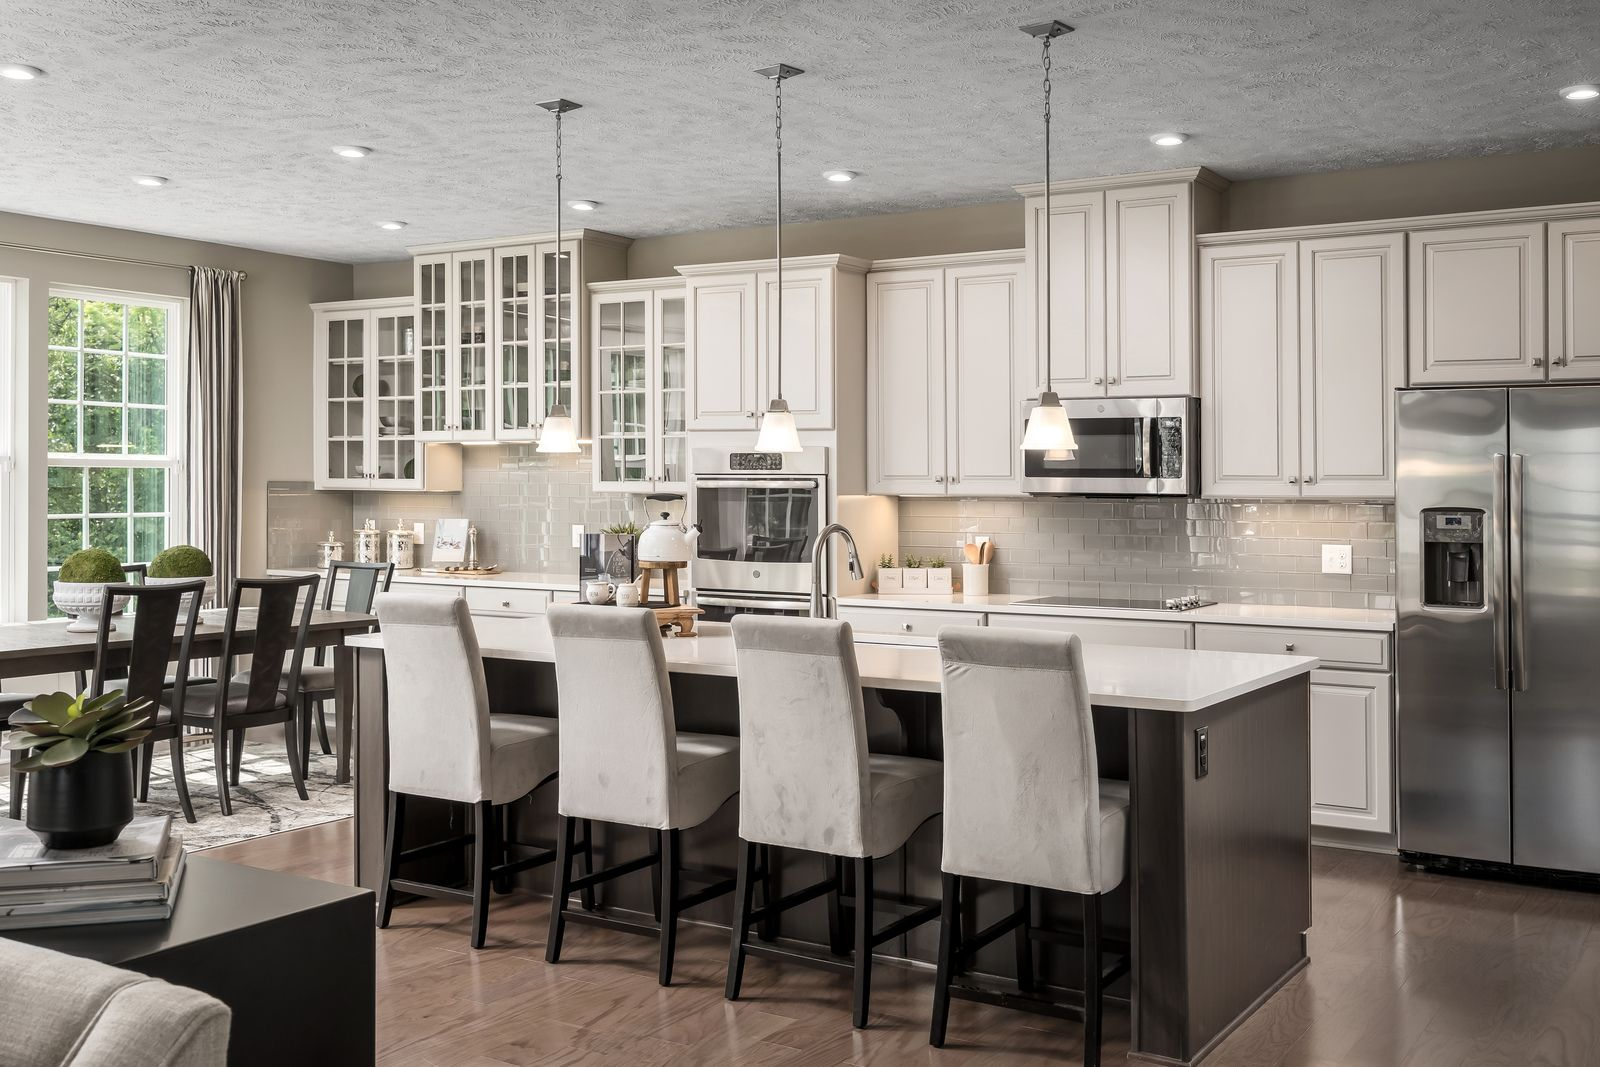 Kitchen featured in the Bateman By Ryan Homes in Richmond-Petersburg, VA